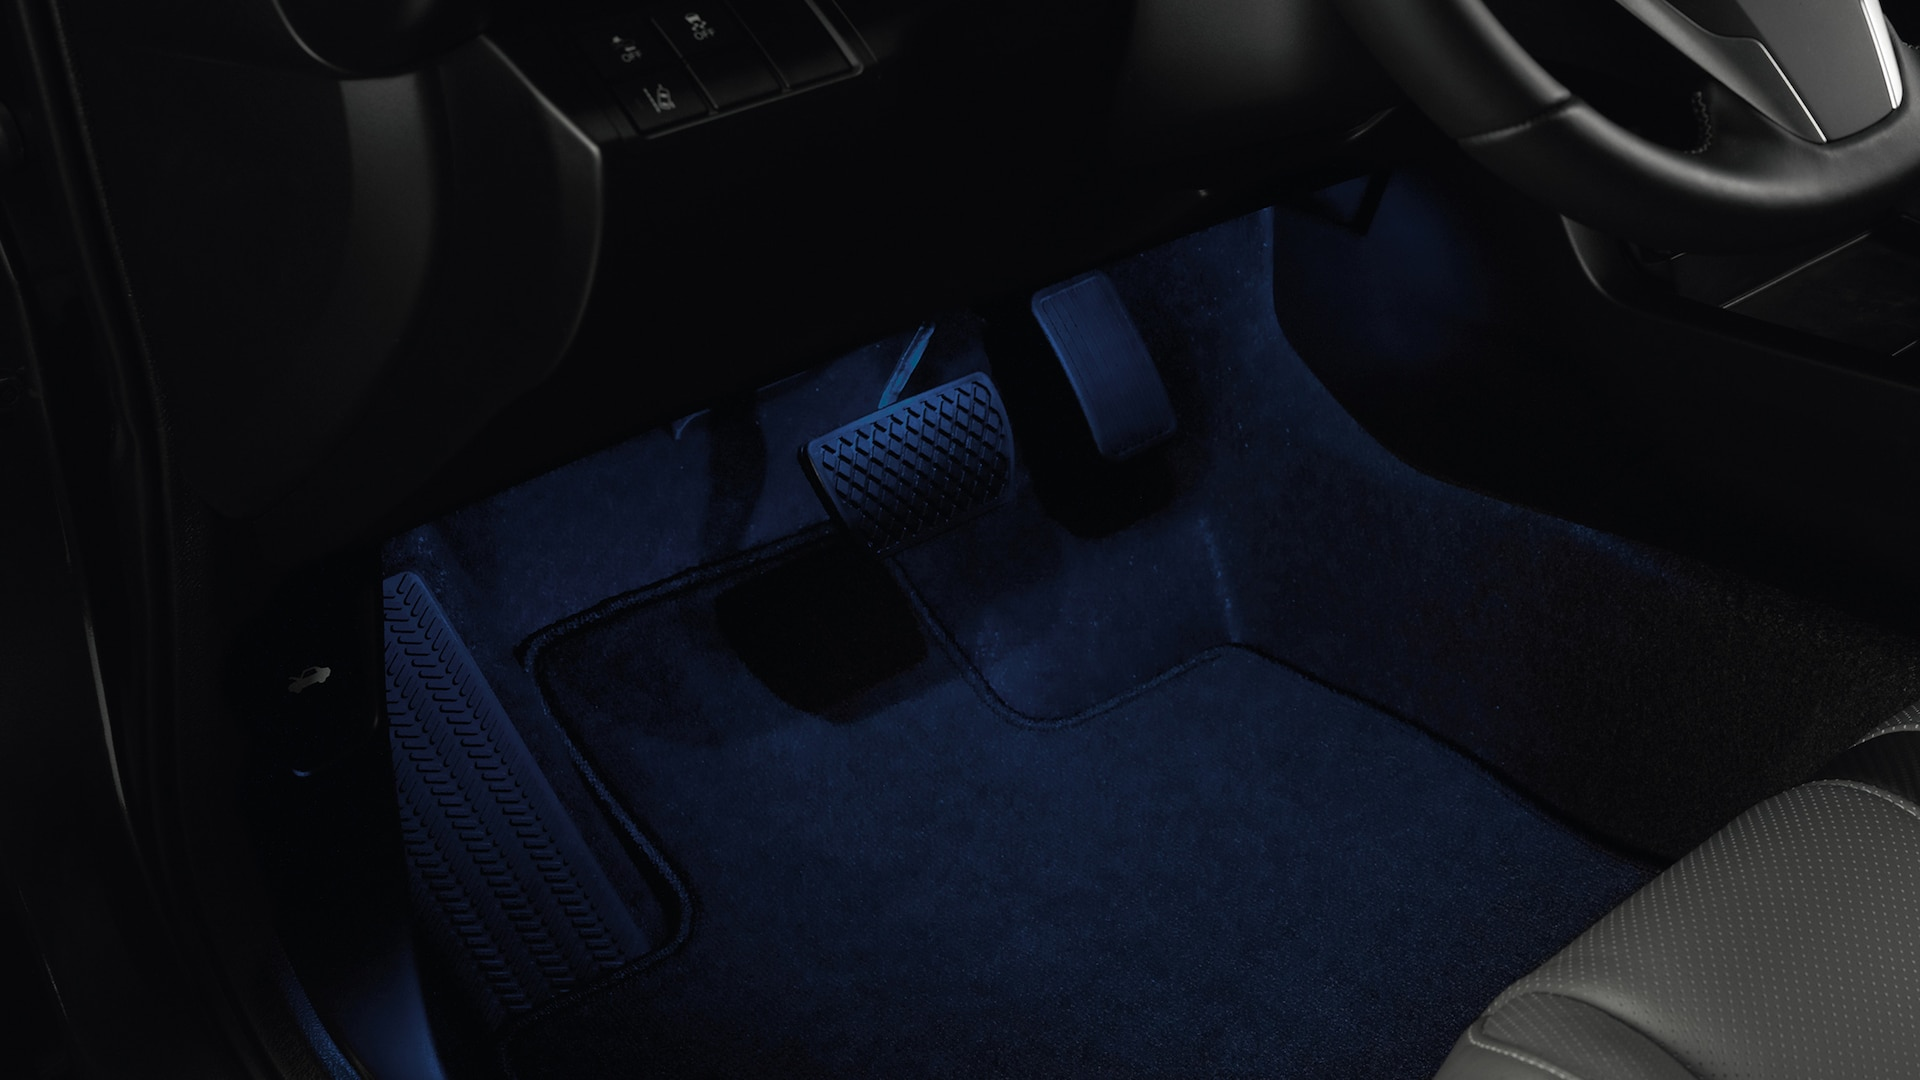 Accessory interior illumination detail on driver-side floor in the 2020 Honda Civic Coupe.